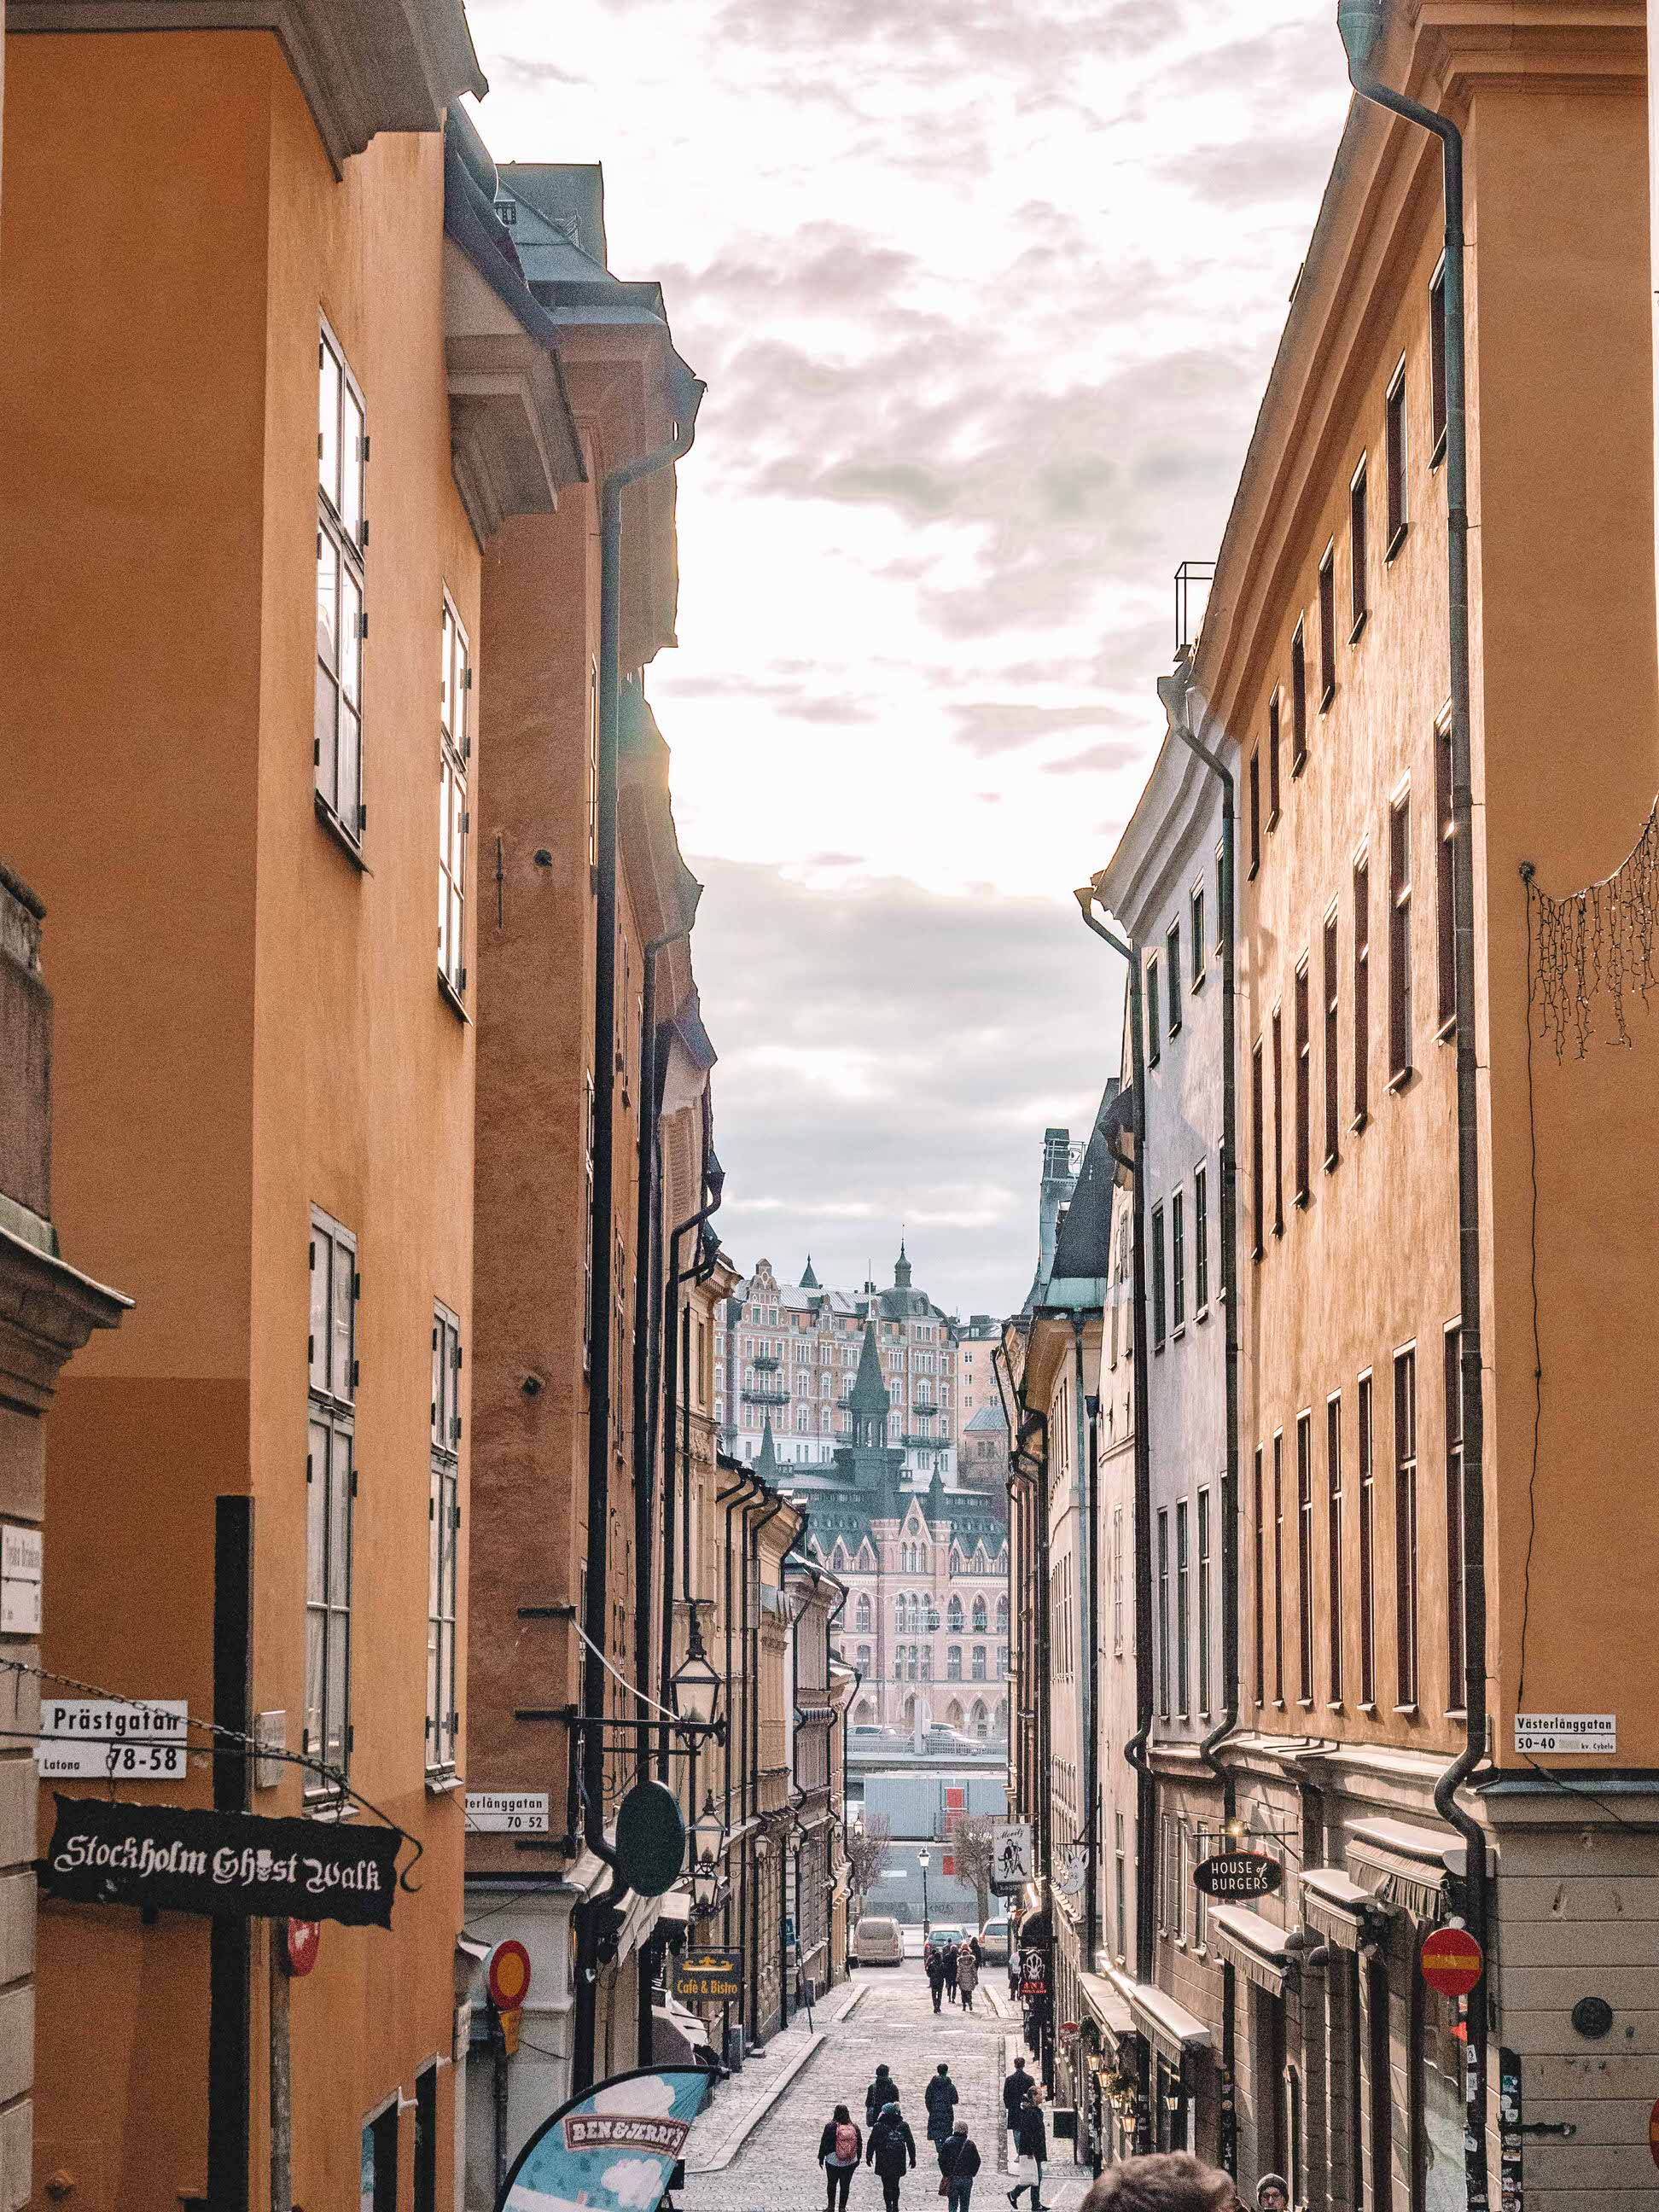 If you only have one day in Stockholm, you might be overwhelmed by all the things to see and do. Gamla Stan, Stockholm's Old Town, is the best part of the city, home to rich history, architecture, so much food and the Royal Palace! Make sure you make time to wander through the winding cobblestone streets to experience all that Gamla Stan has to offer. #sweden #travel #europe